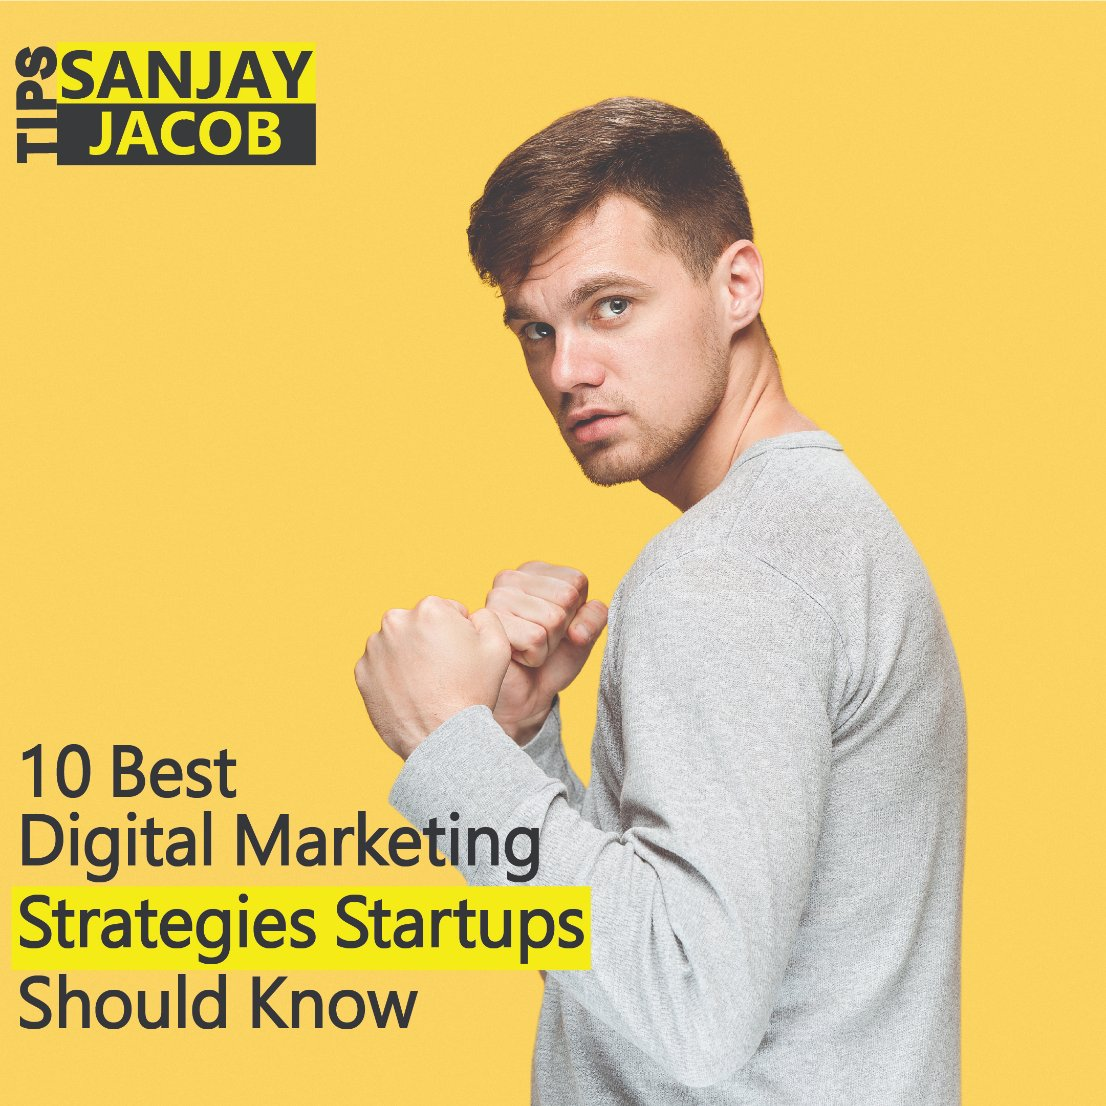 10 Best Digital Marketing Strategies Startups Should Know For full post: https://www. linkedin.com/posts/sanjay-j acob_marketing-digitalmarketingtips-marketingagency-activity-6660835321724444673-5RkM   …   #marketing #digitalmarketingtips #socialmediamarketing #digitalmarketingservices #digitalmarketingstrategy  #emailmarketing #seo #digitalmarketing   #digitalmarketingmanager #chennai<br>http://pic.twitter.com/zc57r36kkm